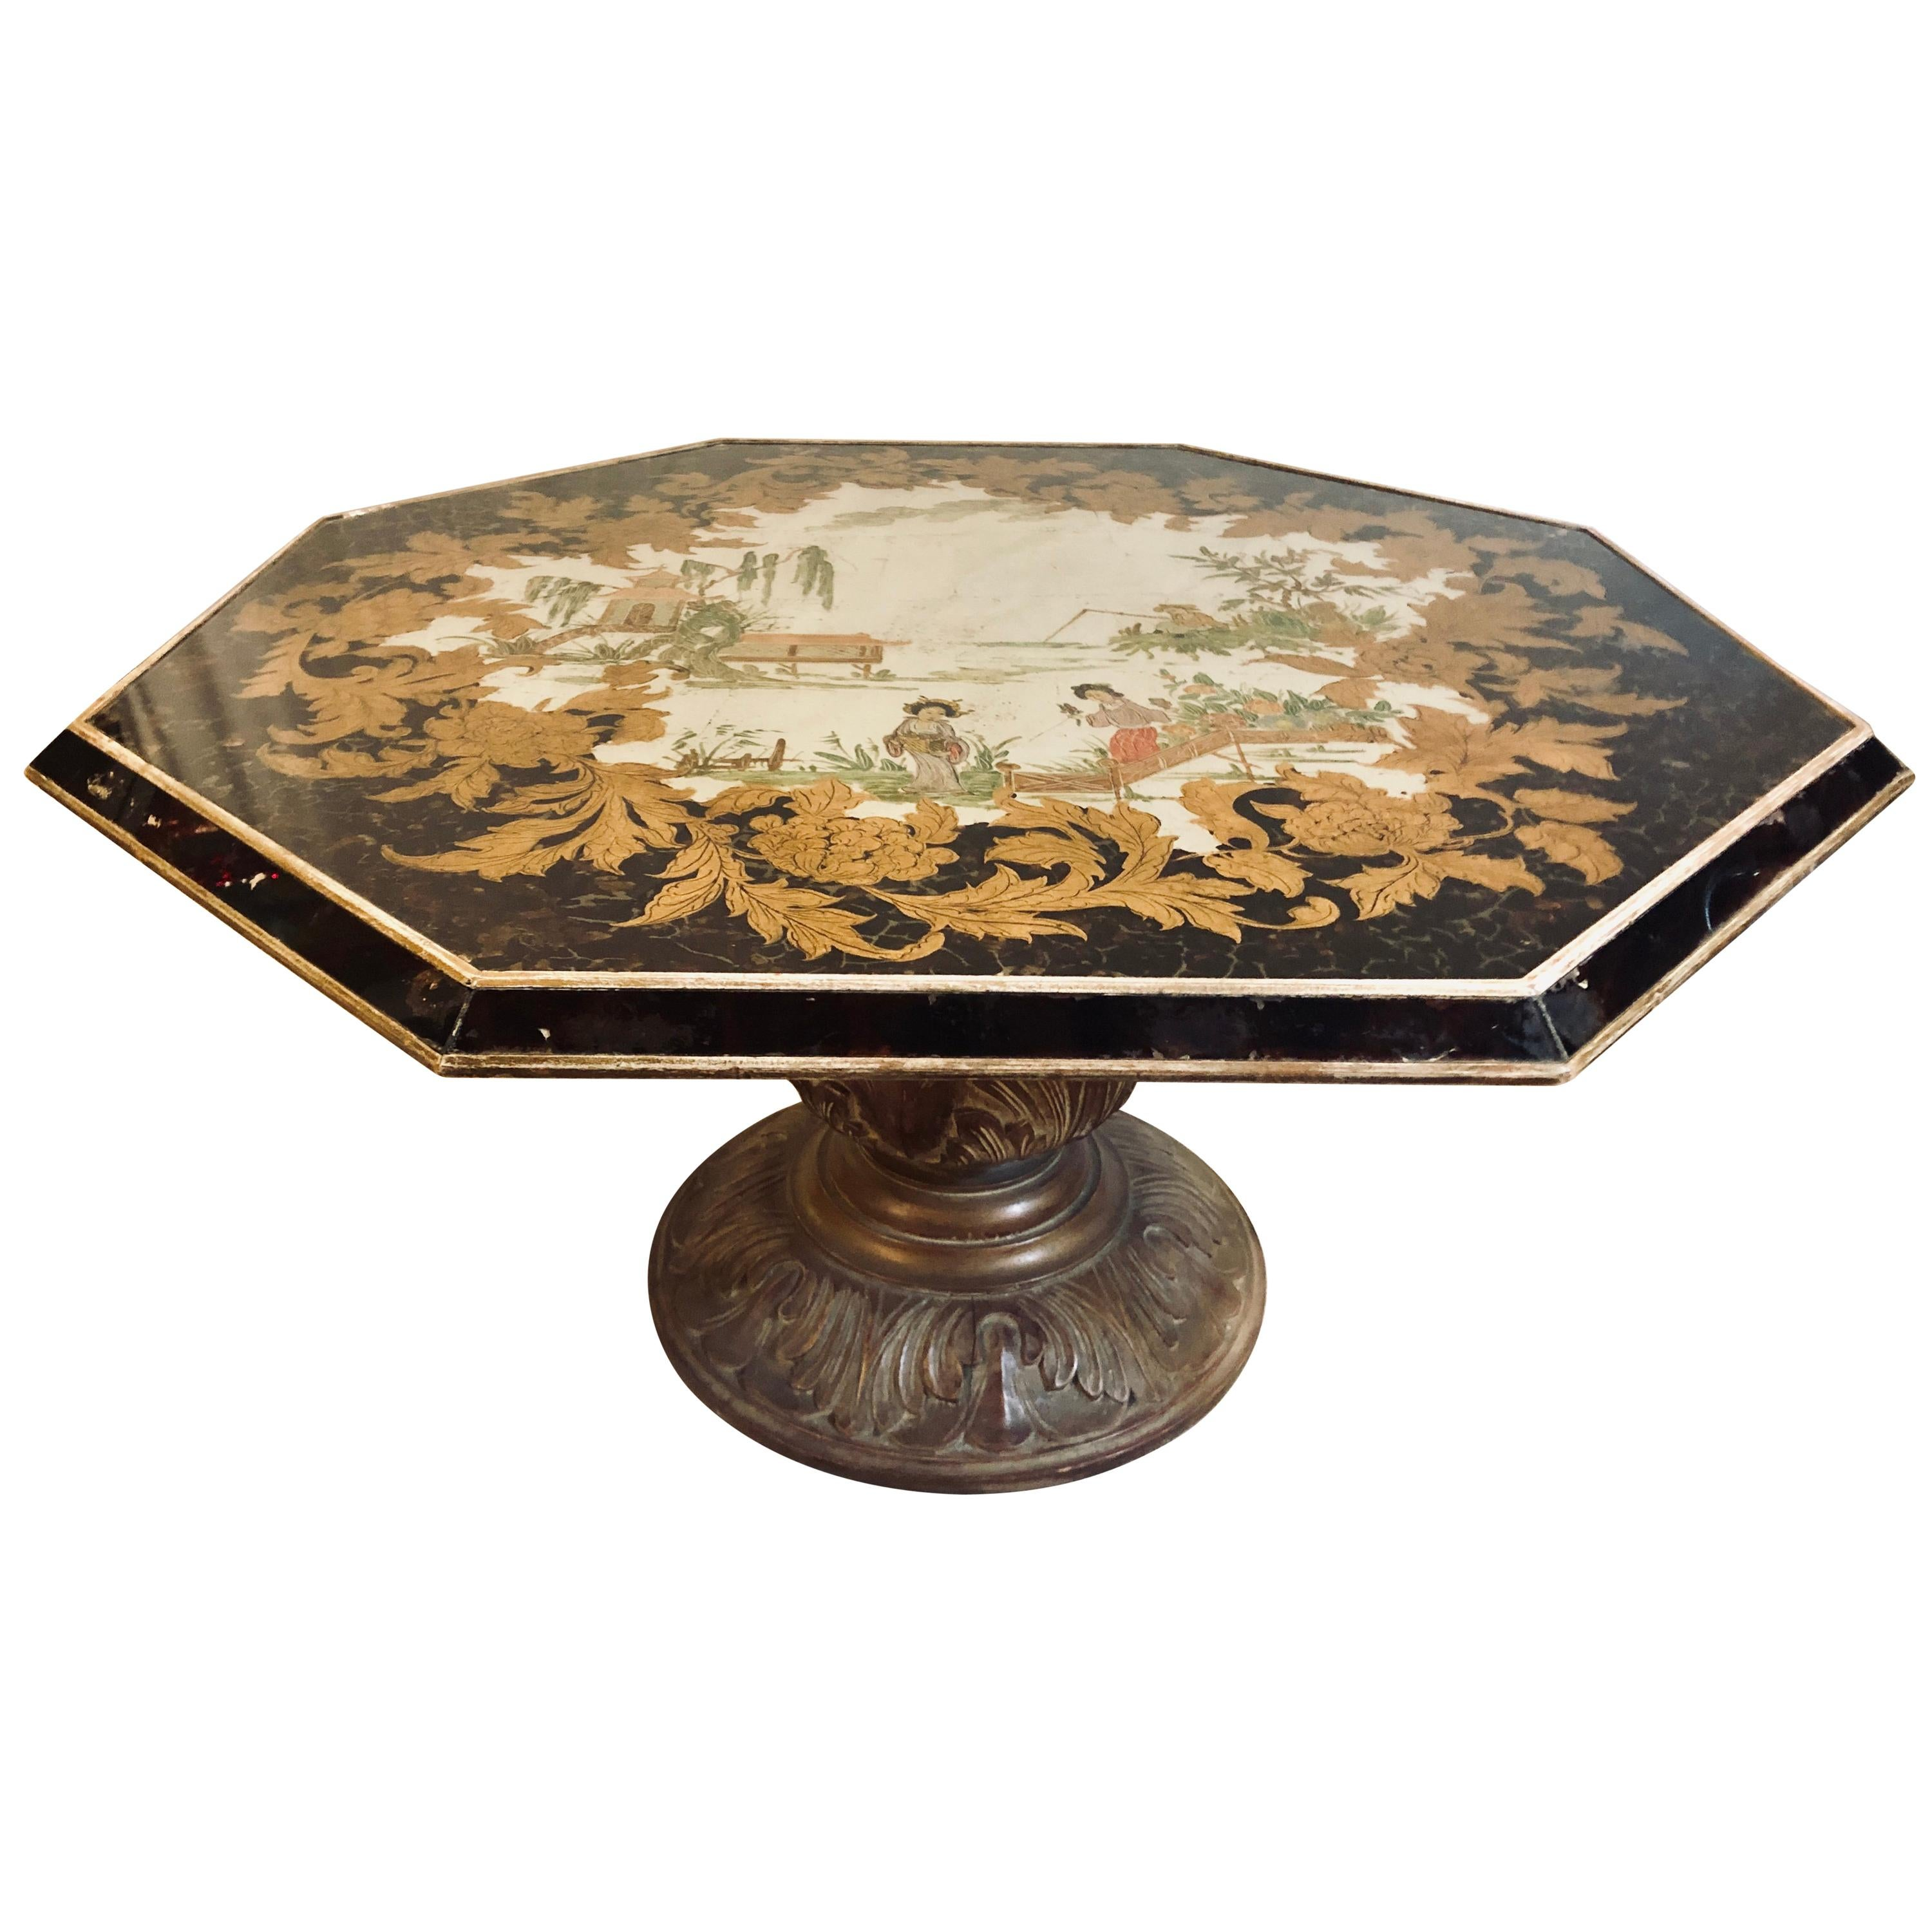 Octagon Chinoiserie Decorated Mirror Top Low Coffee Table with Carved Wood Base